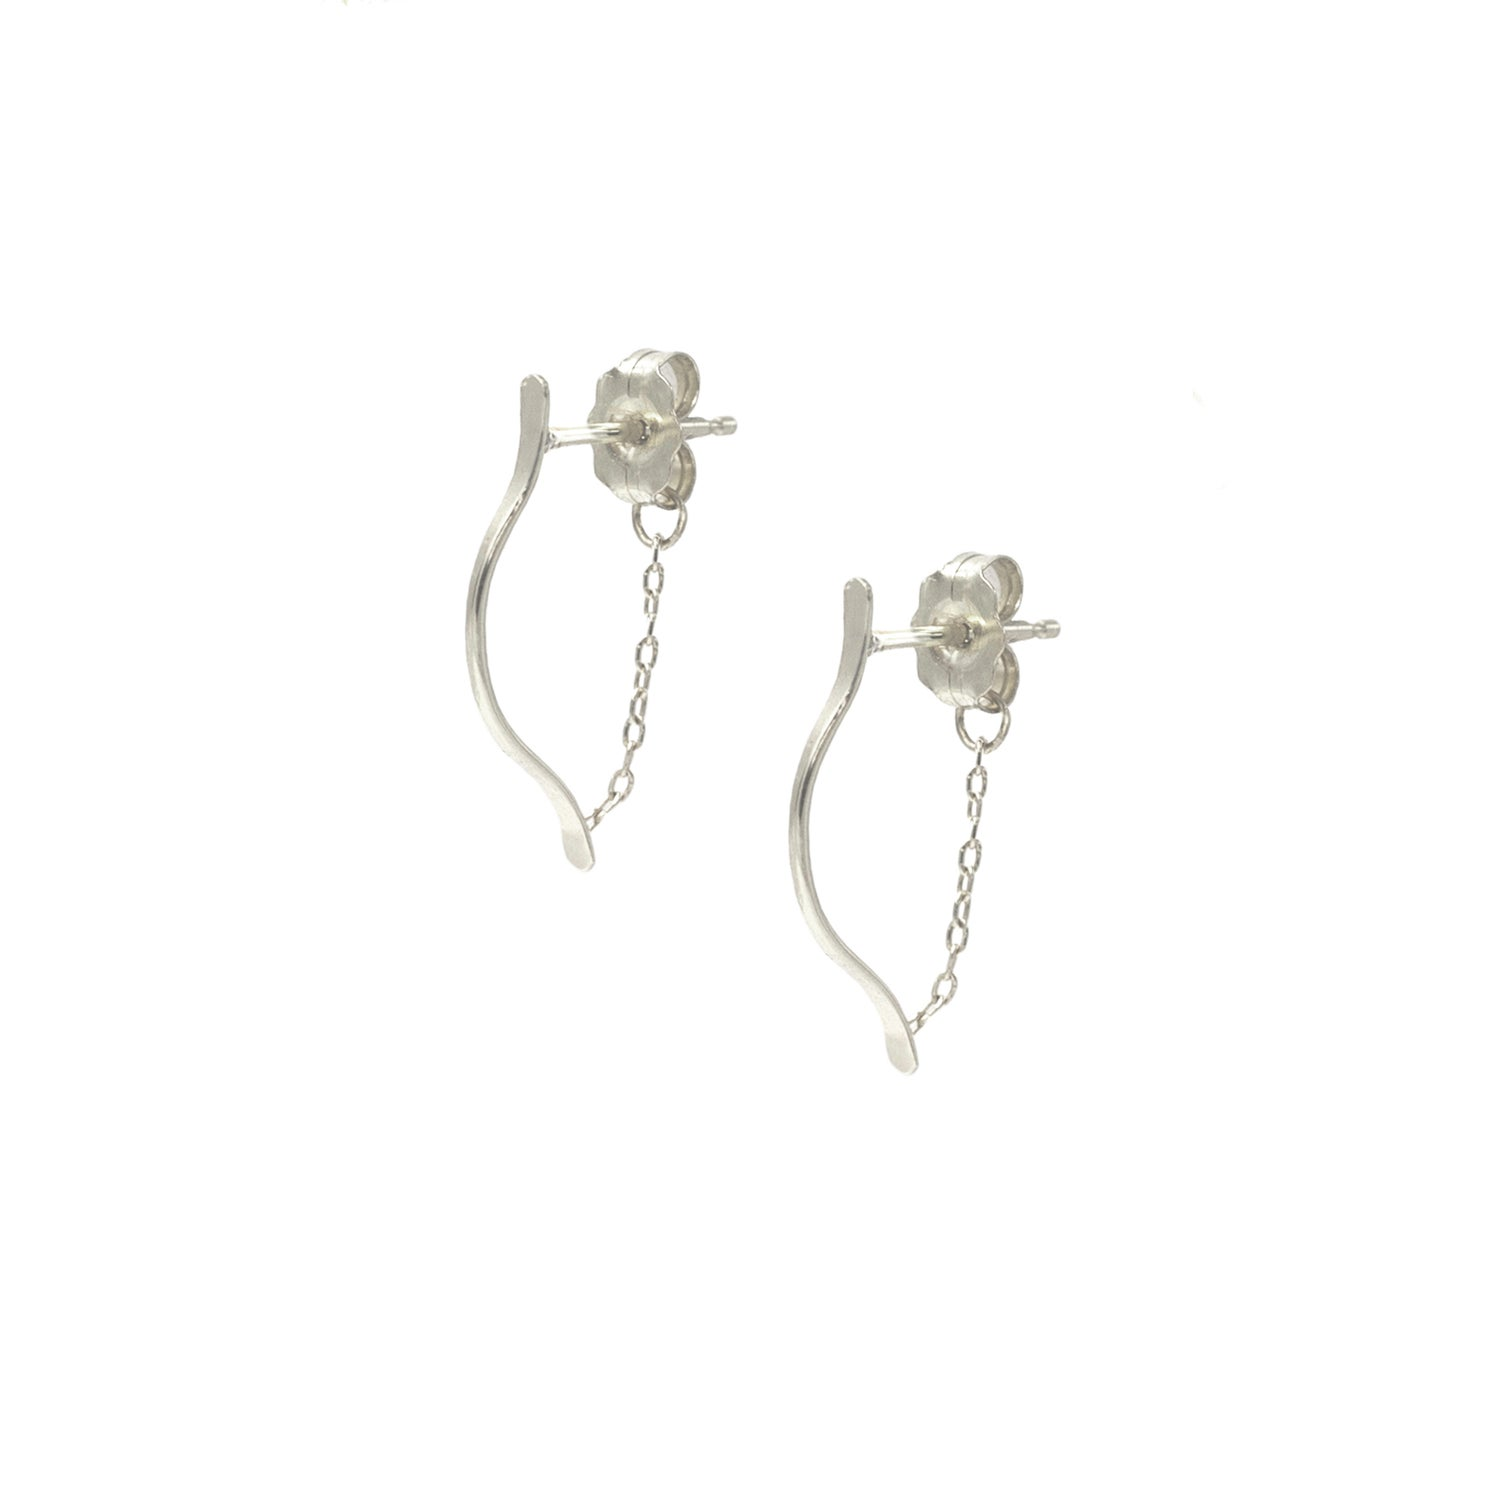 Image of SMALL ARTEMIS EARRINGS SILVER